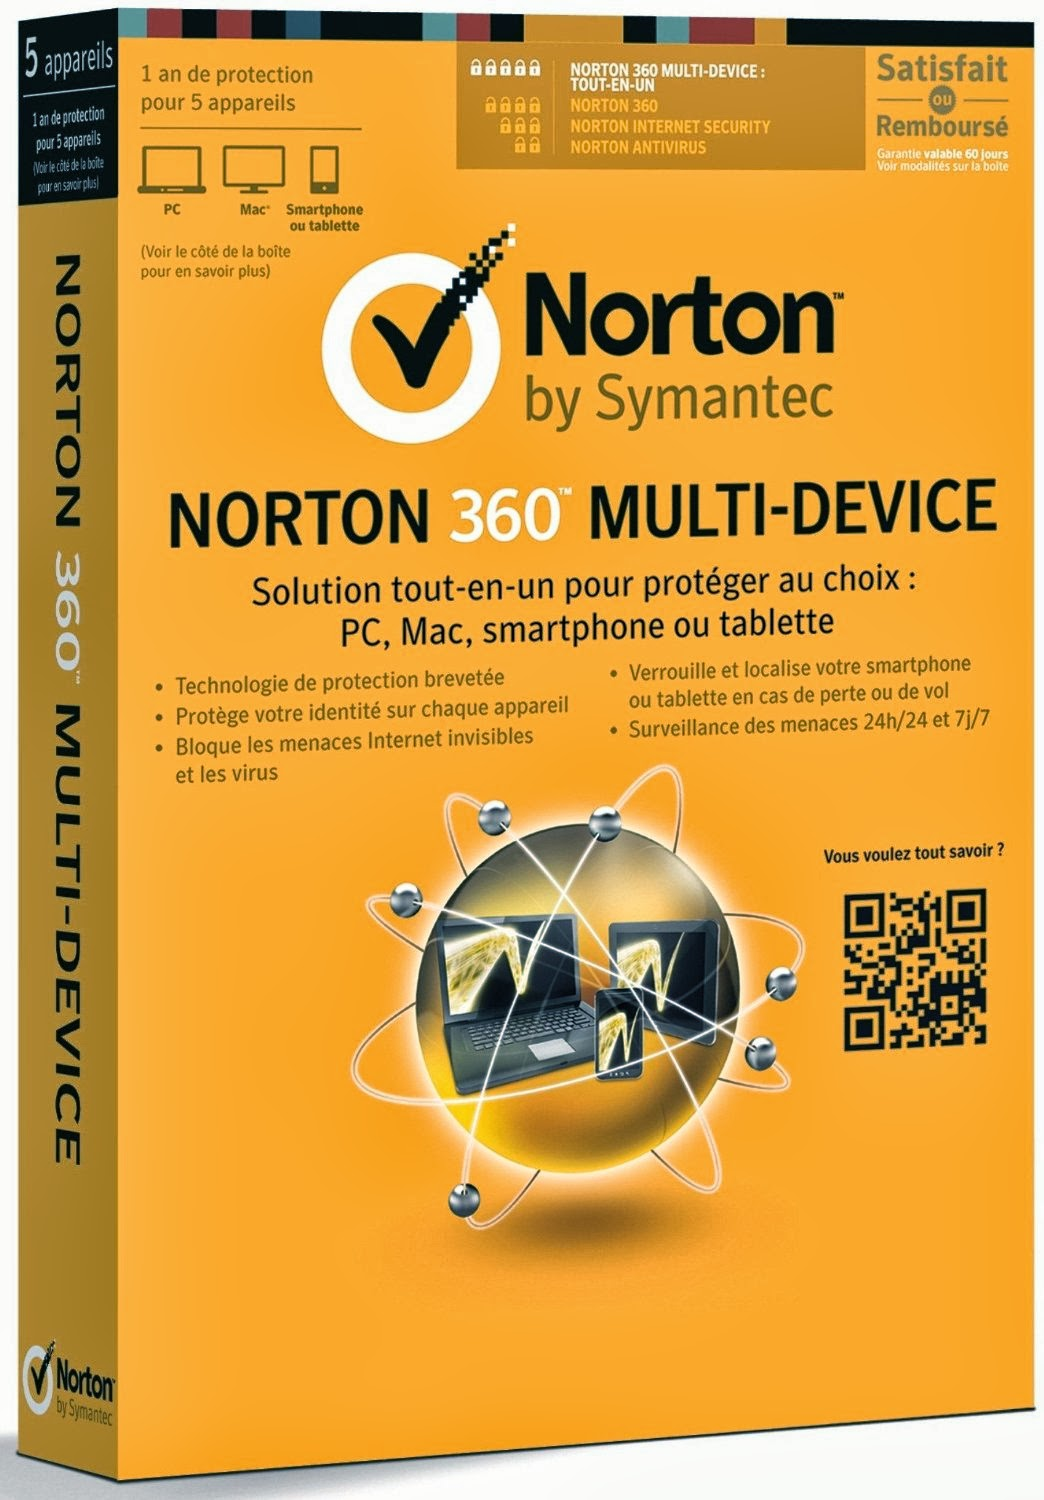 norton 360 multi device keygen crack telechargement gratuit logiciels cracked. Black Bedroom Furniture Sets. Home Design Ideas